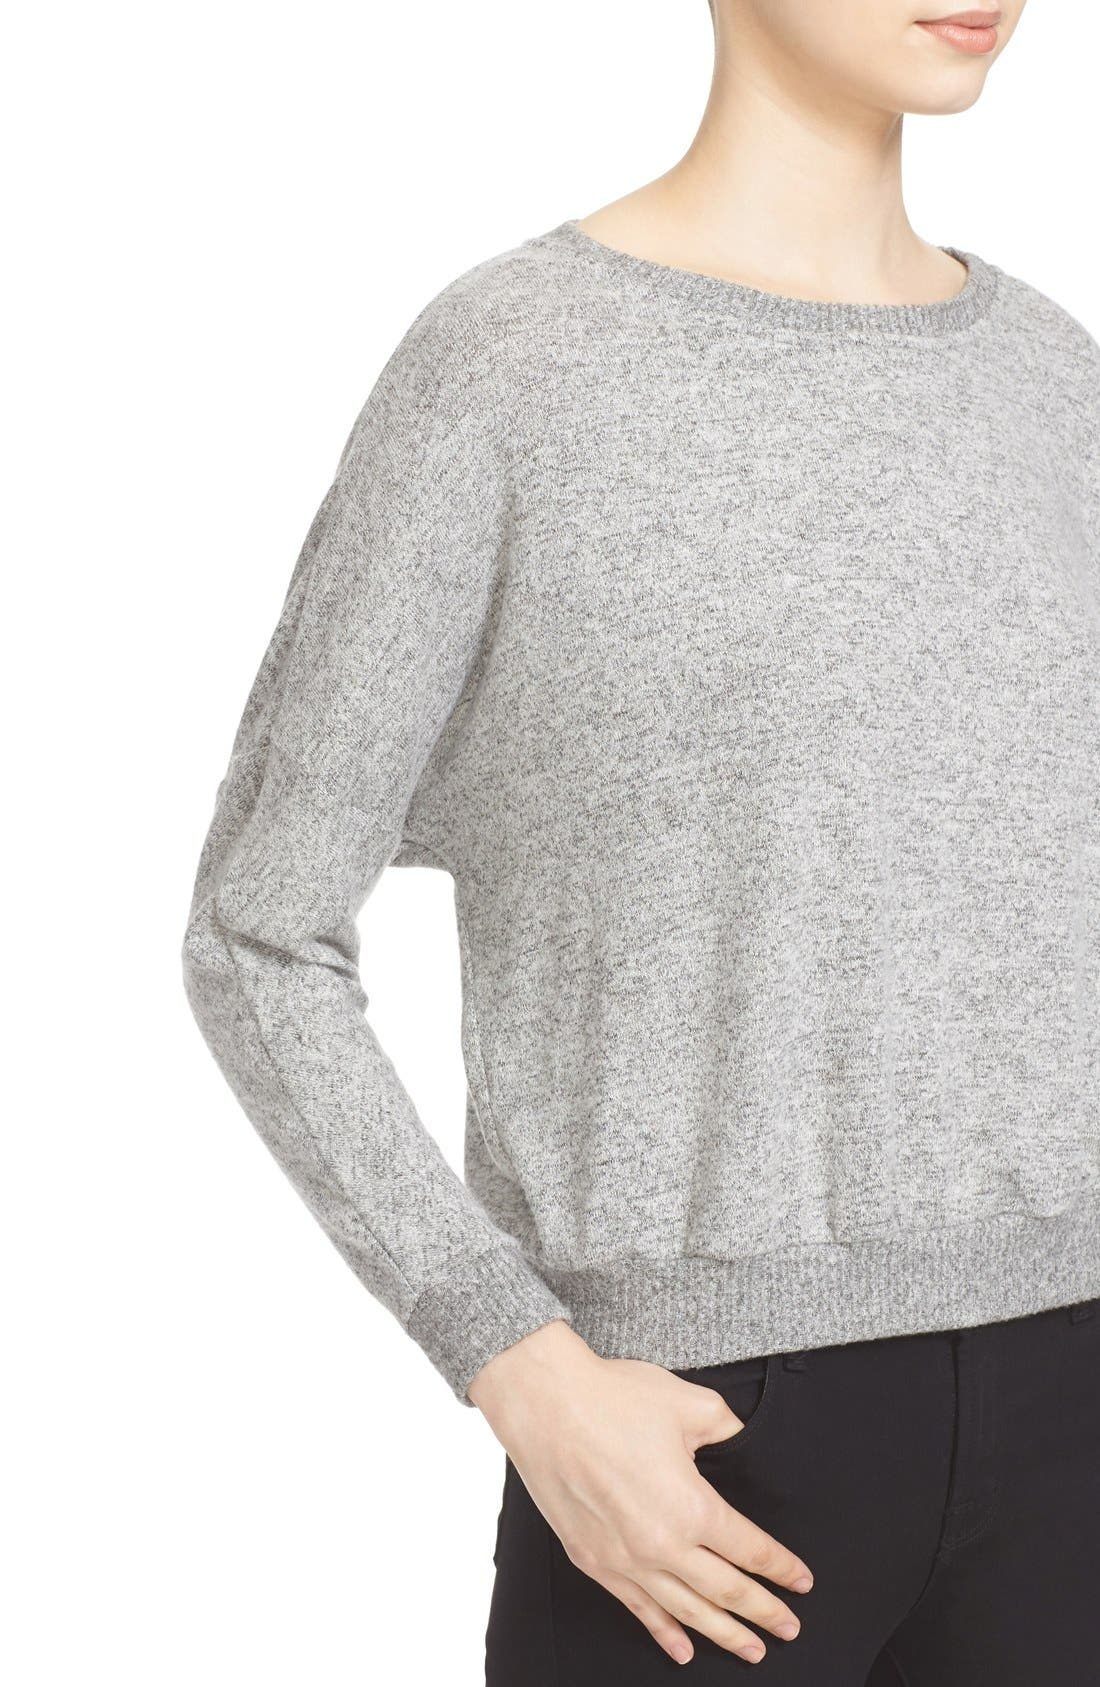 Soft Joie Giardia Drop Shoulder Sweater,                             Alternate thumbnail 7, color,                             099